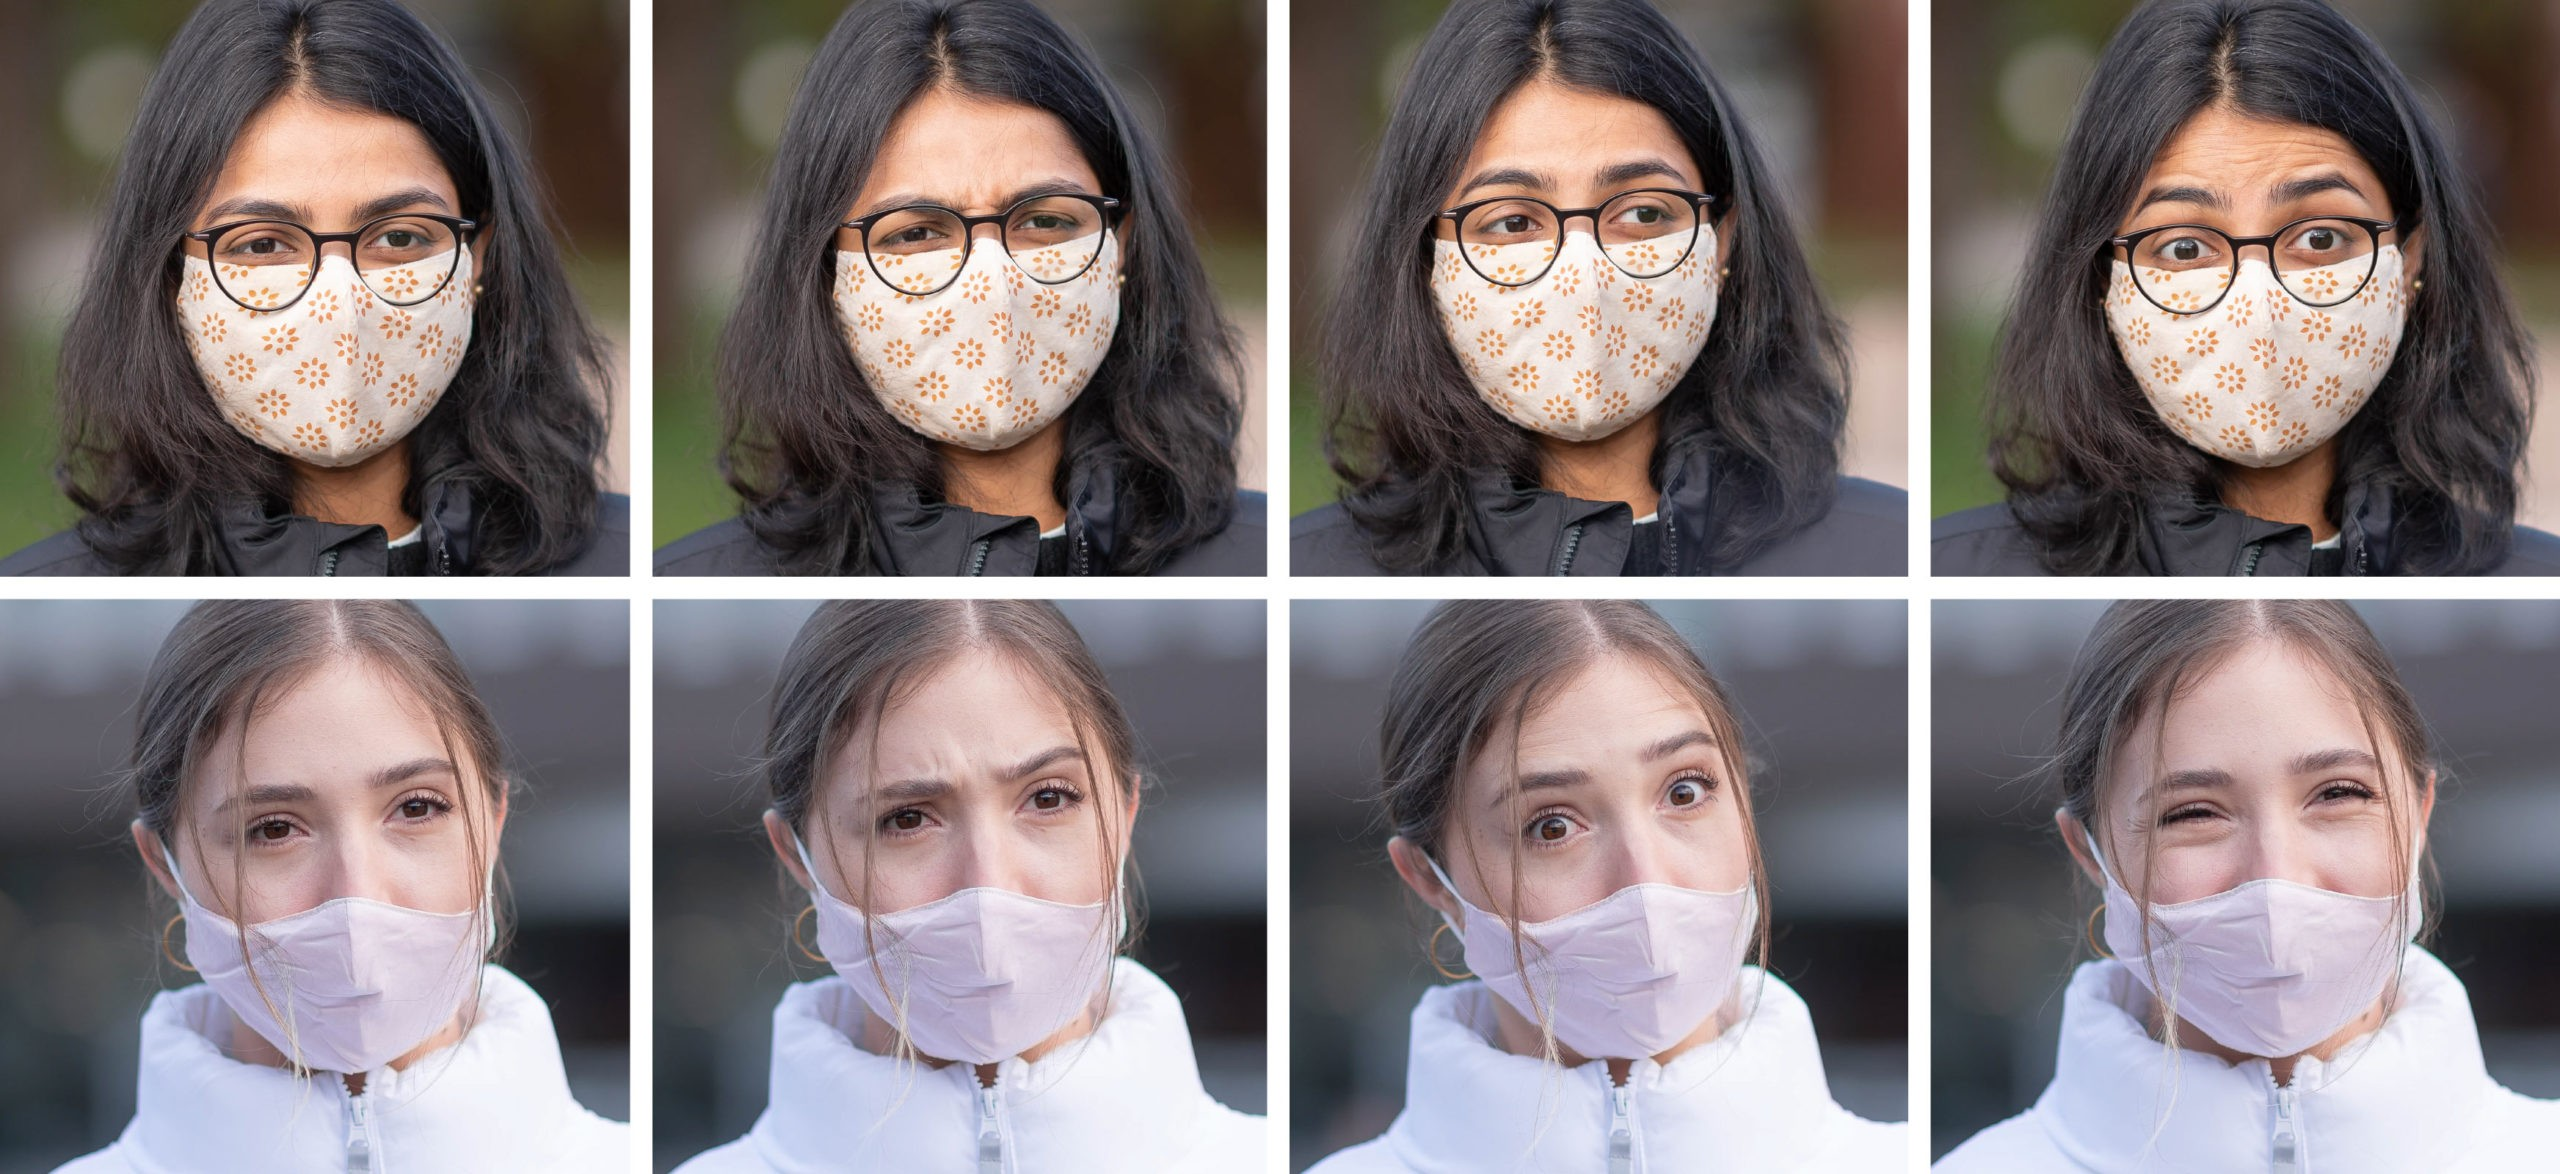 A series of images showing how eyes can help express what someone is saying when they are wearing a COVID-19 face mask